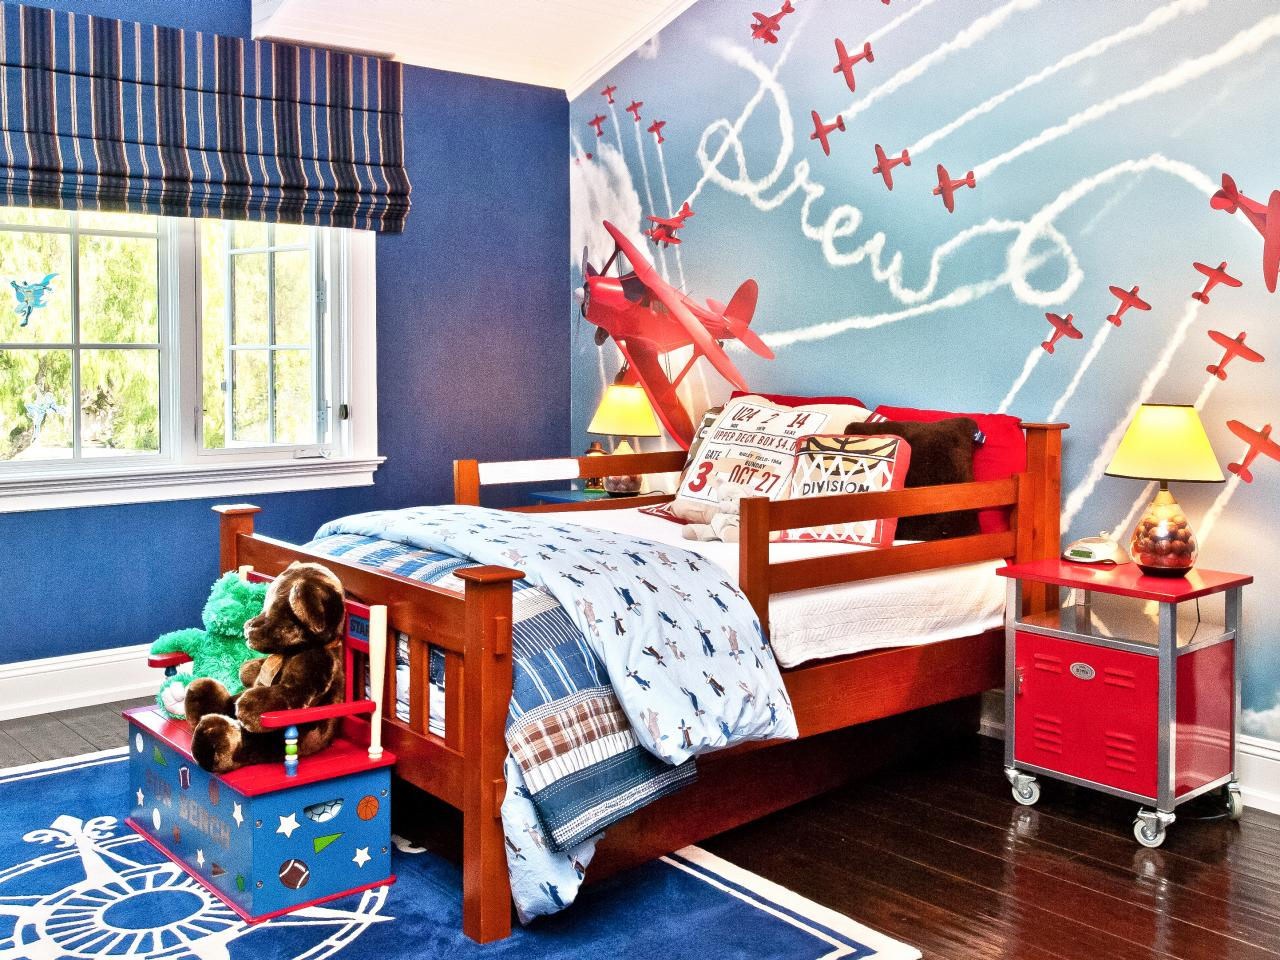 Create an Airplane Theme In Your Child's Room